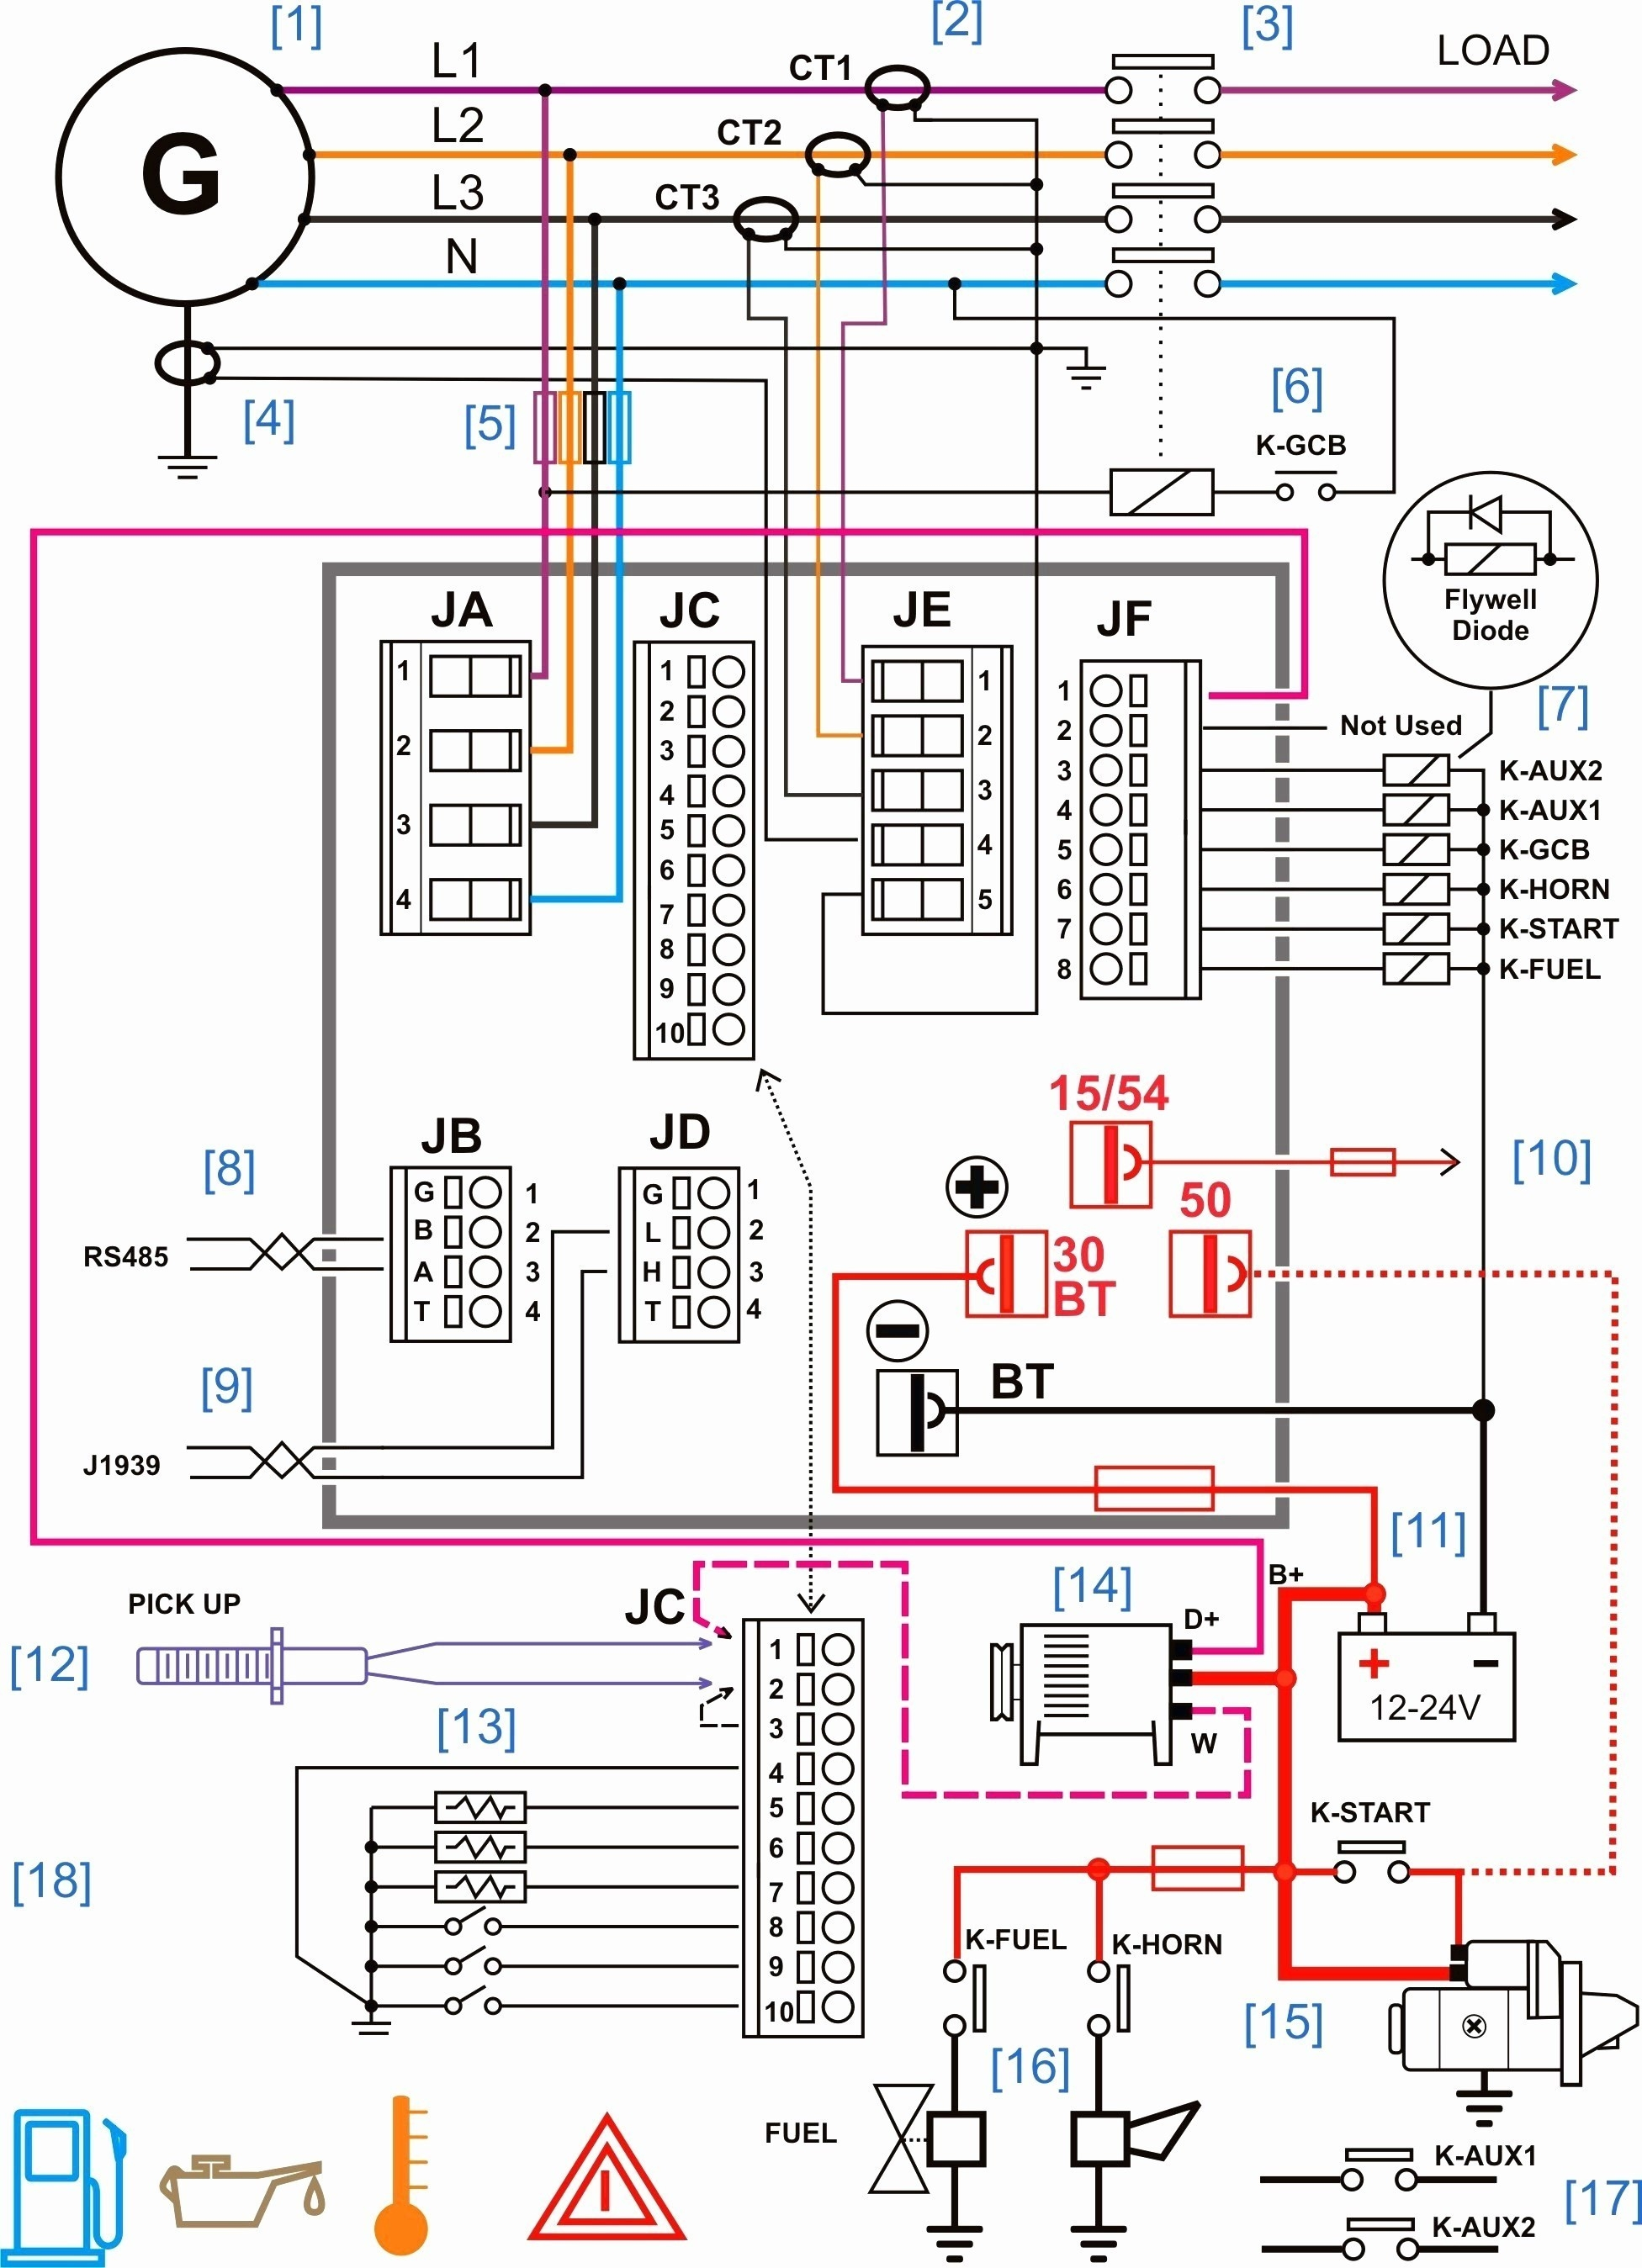 hight resolution of free home wiring diagram software house wiring diagram maker save electrical circuits drawing free software